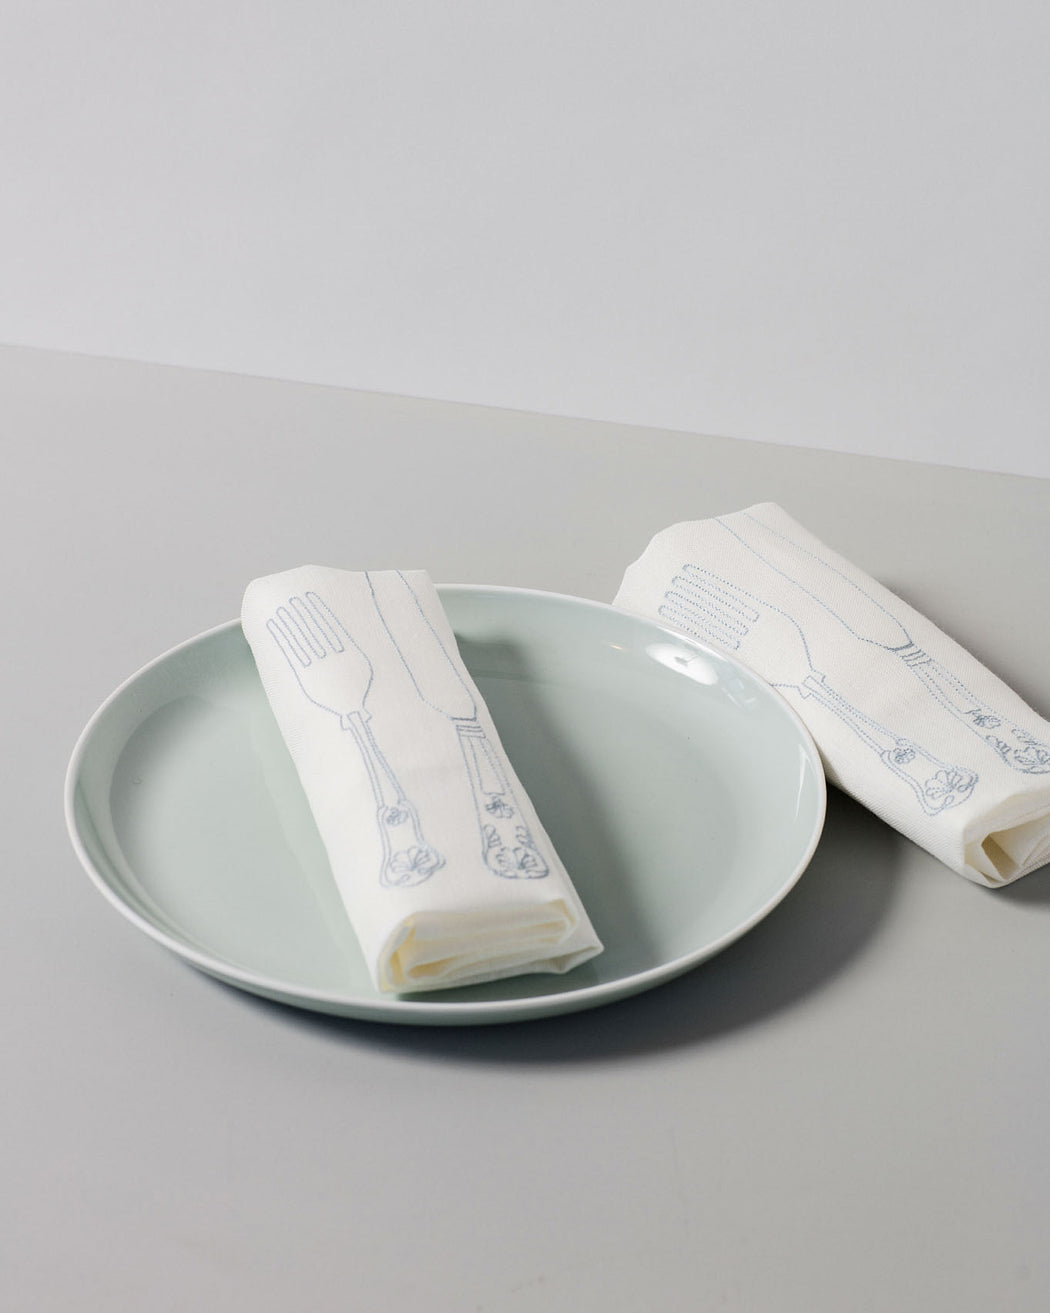 'Silver Service' Irish Linen Table Runner & 6 x Napkin Gift Set